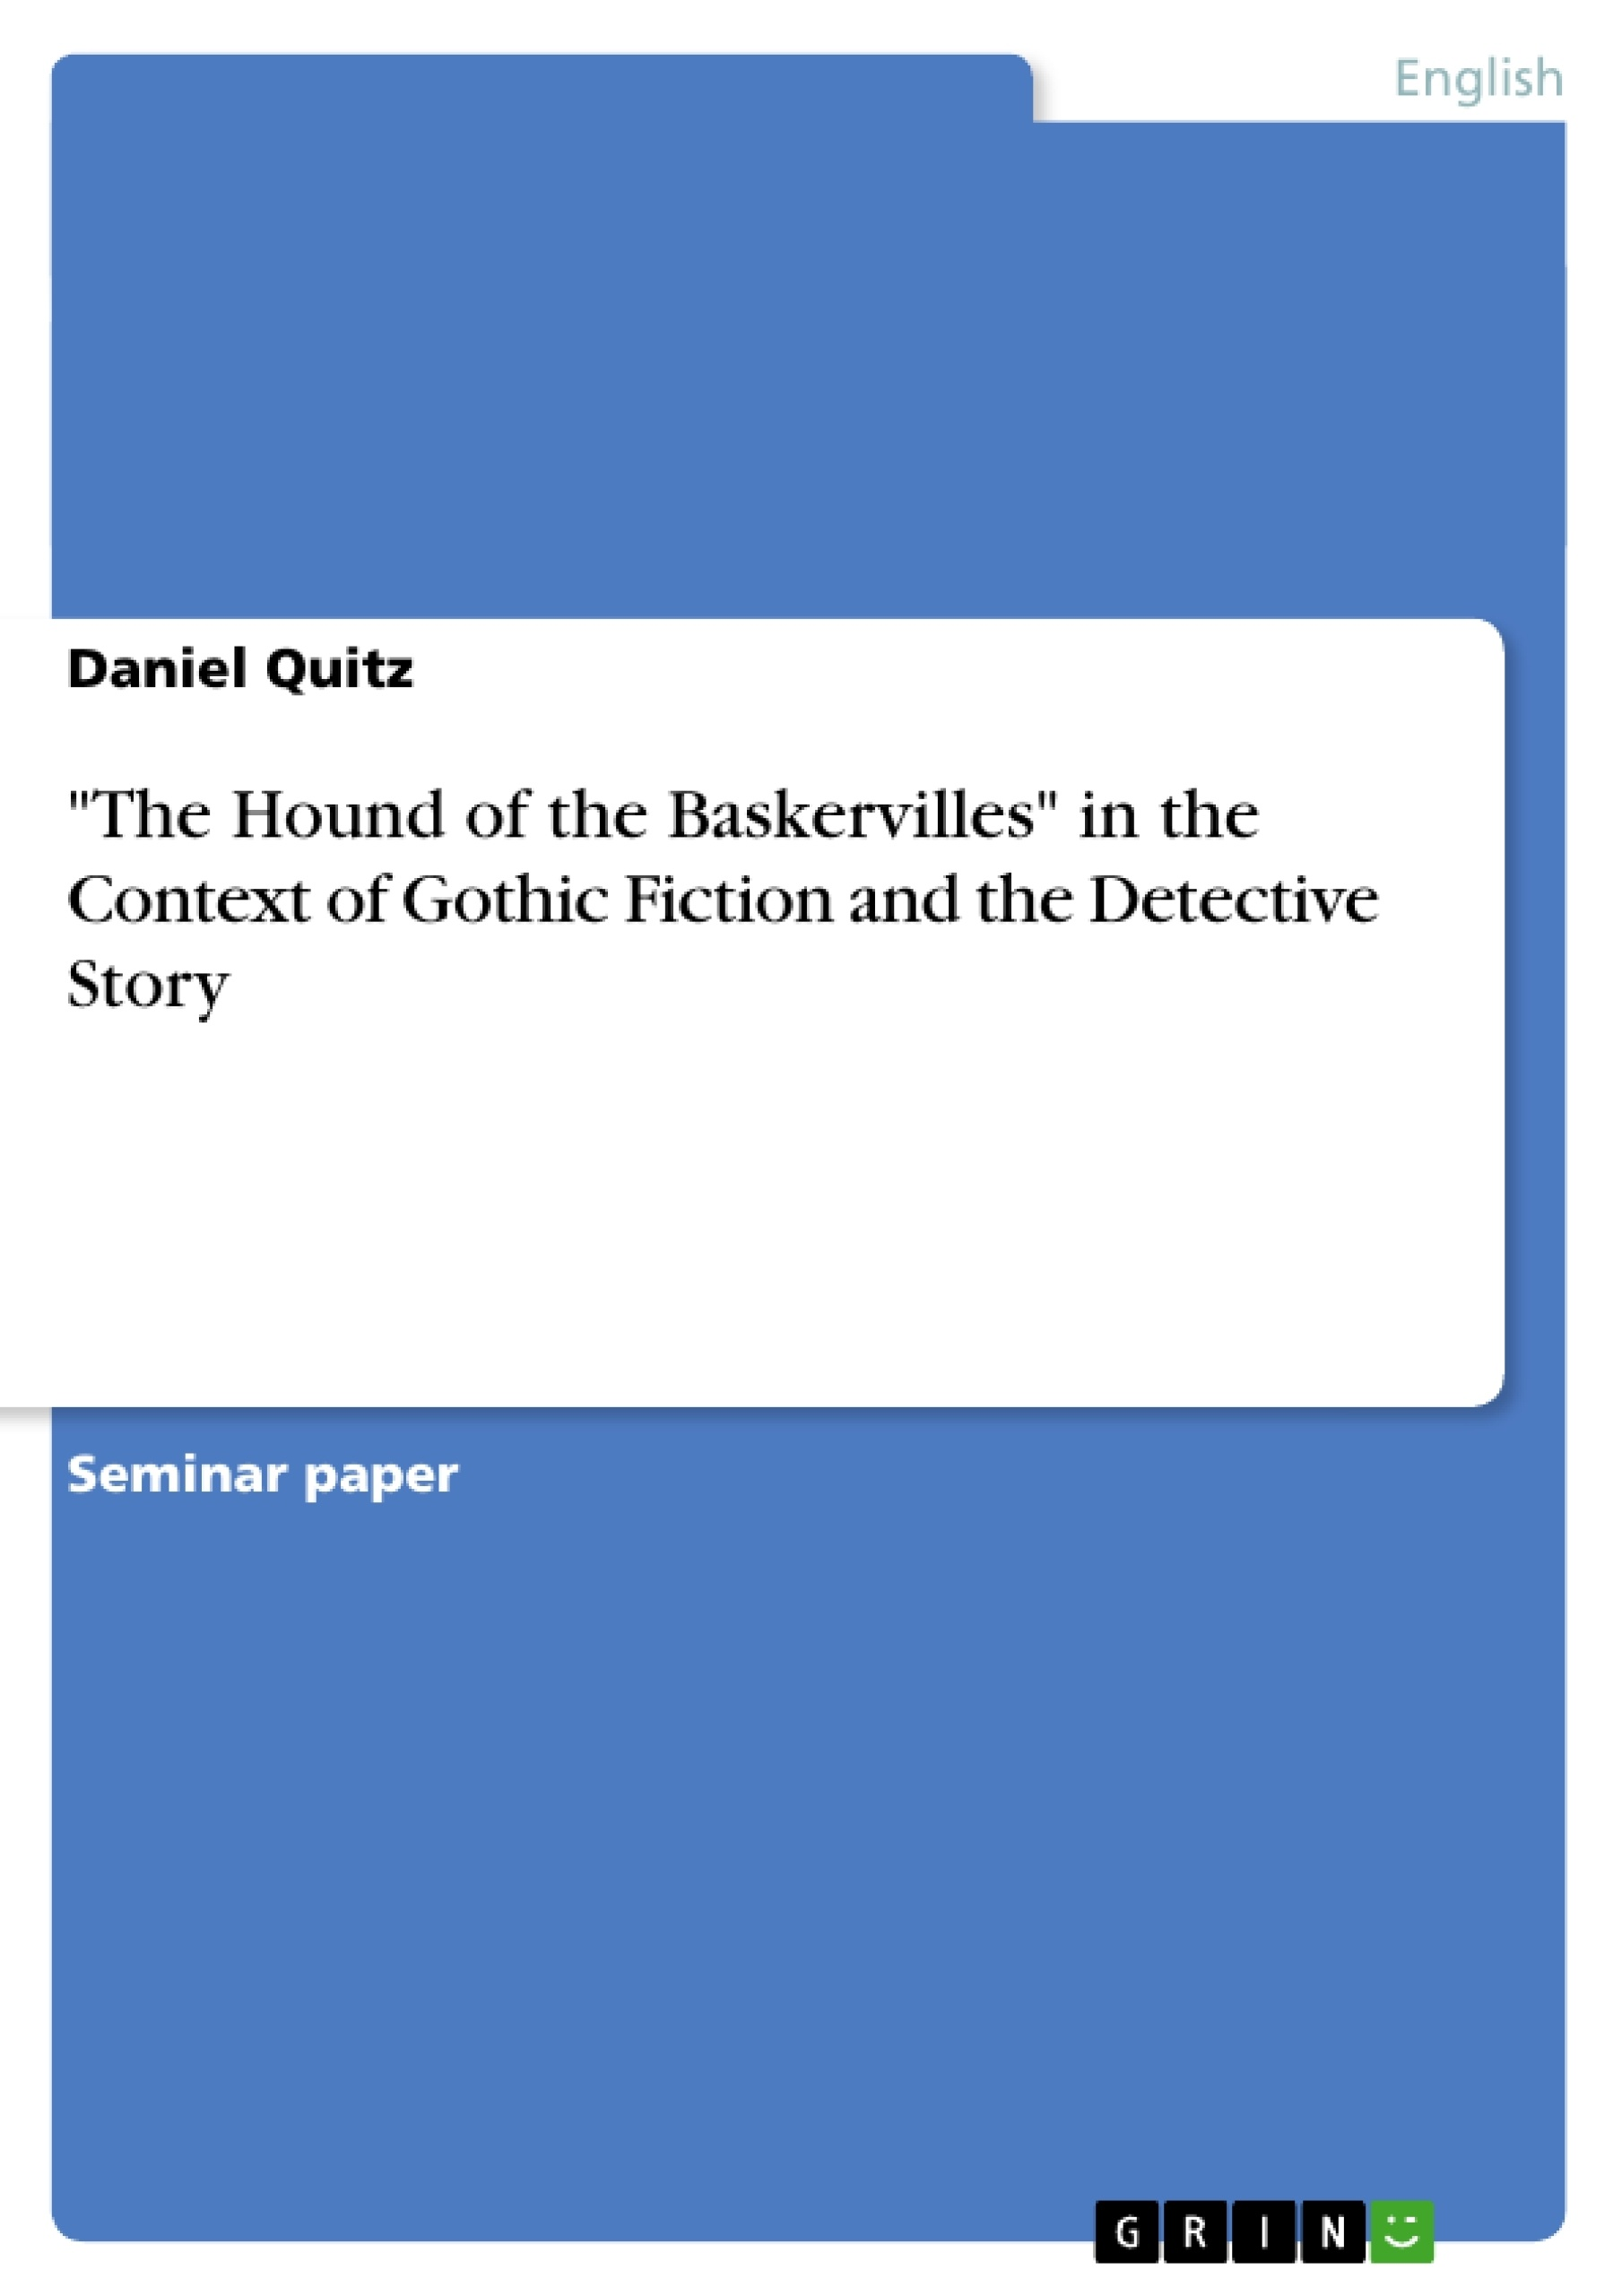 the hound of the baskervilles in the context of gothic fiction upload your own papers earn money and win an iphone 7